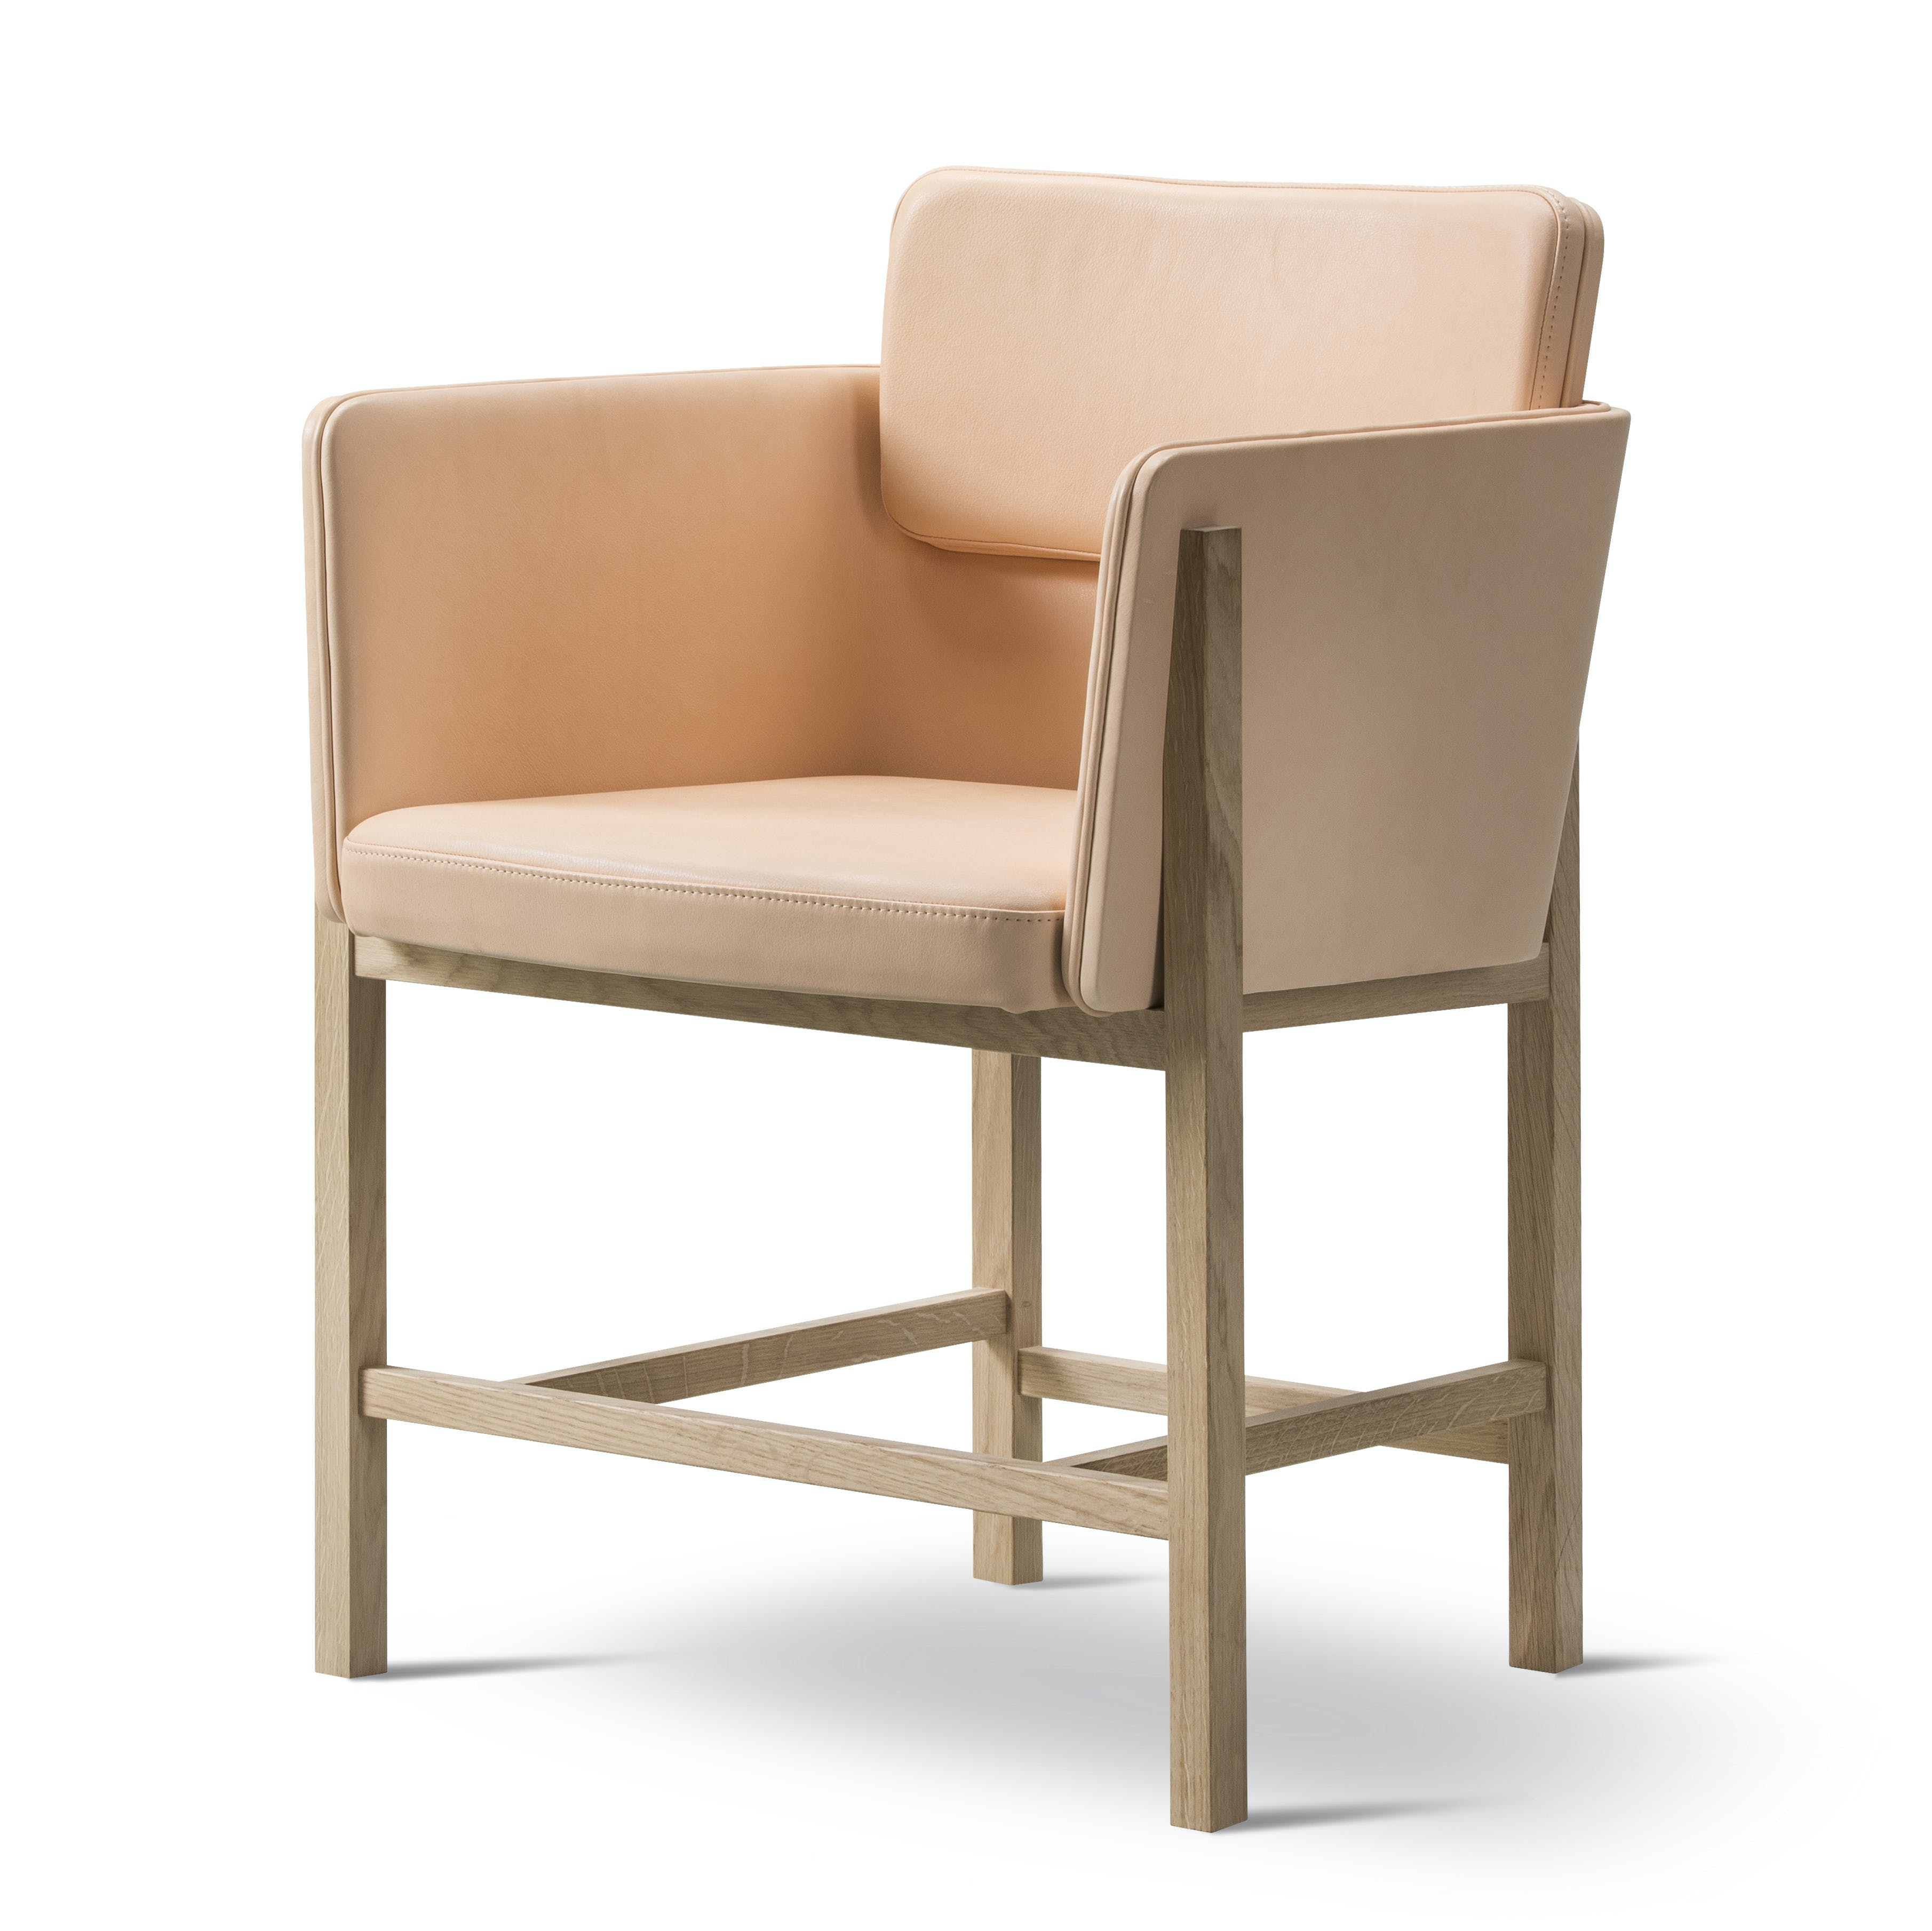 Fredericia Furniture Din Chair Angle Haute Living